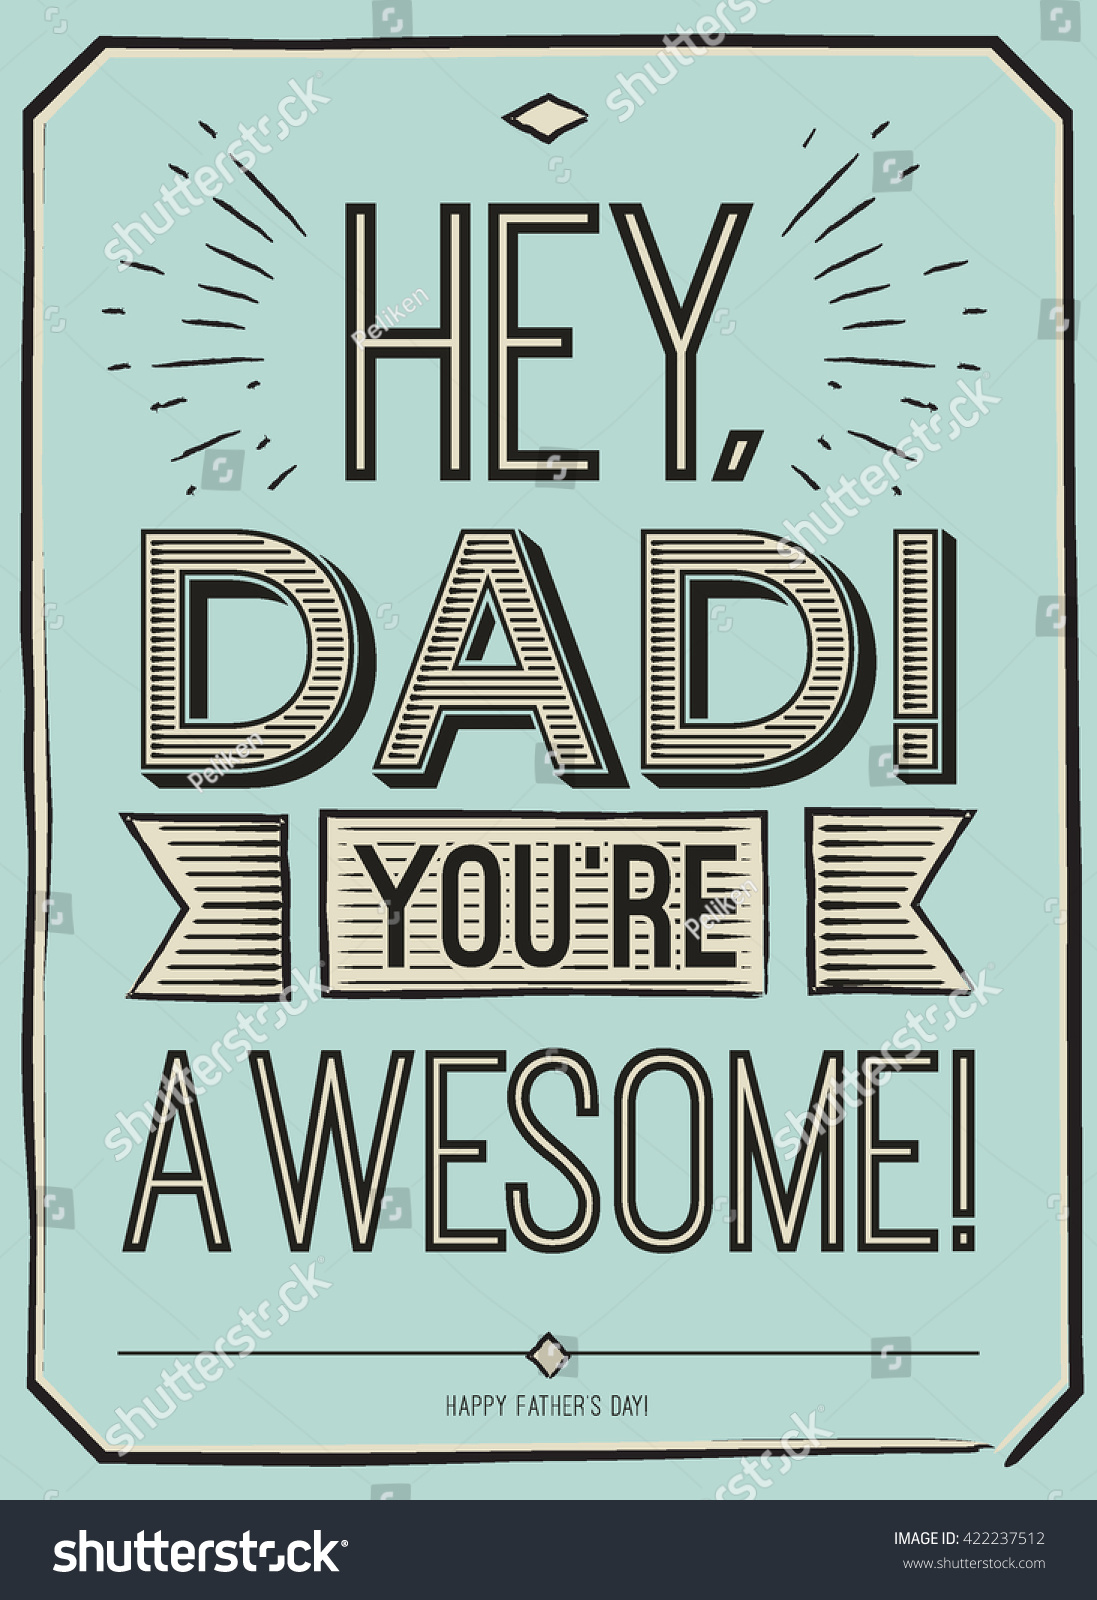 D ad poster design - Fathers Day Card Hey Dad You Re Awesome Poster Design With